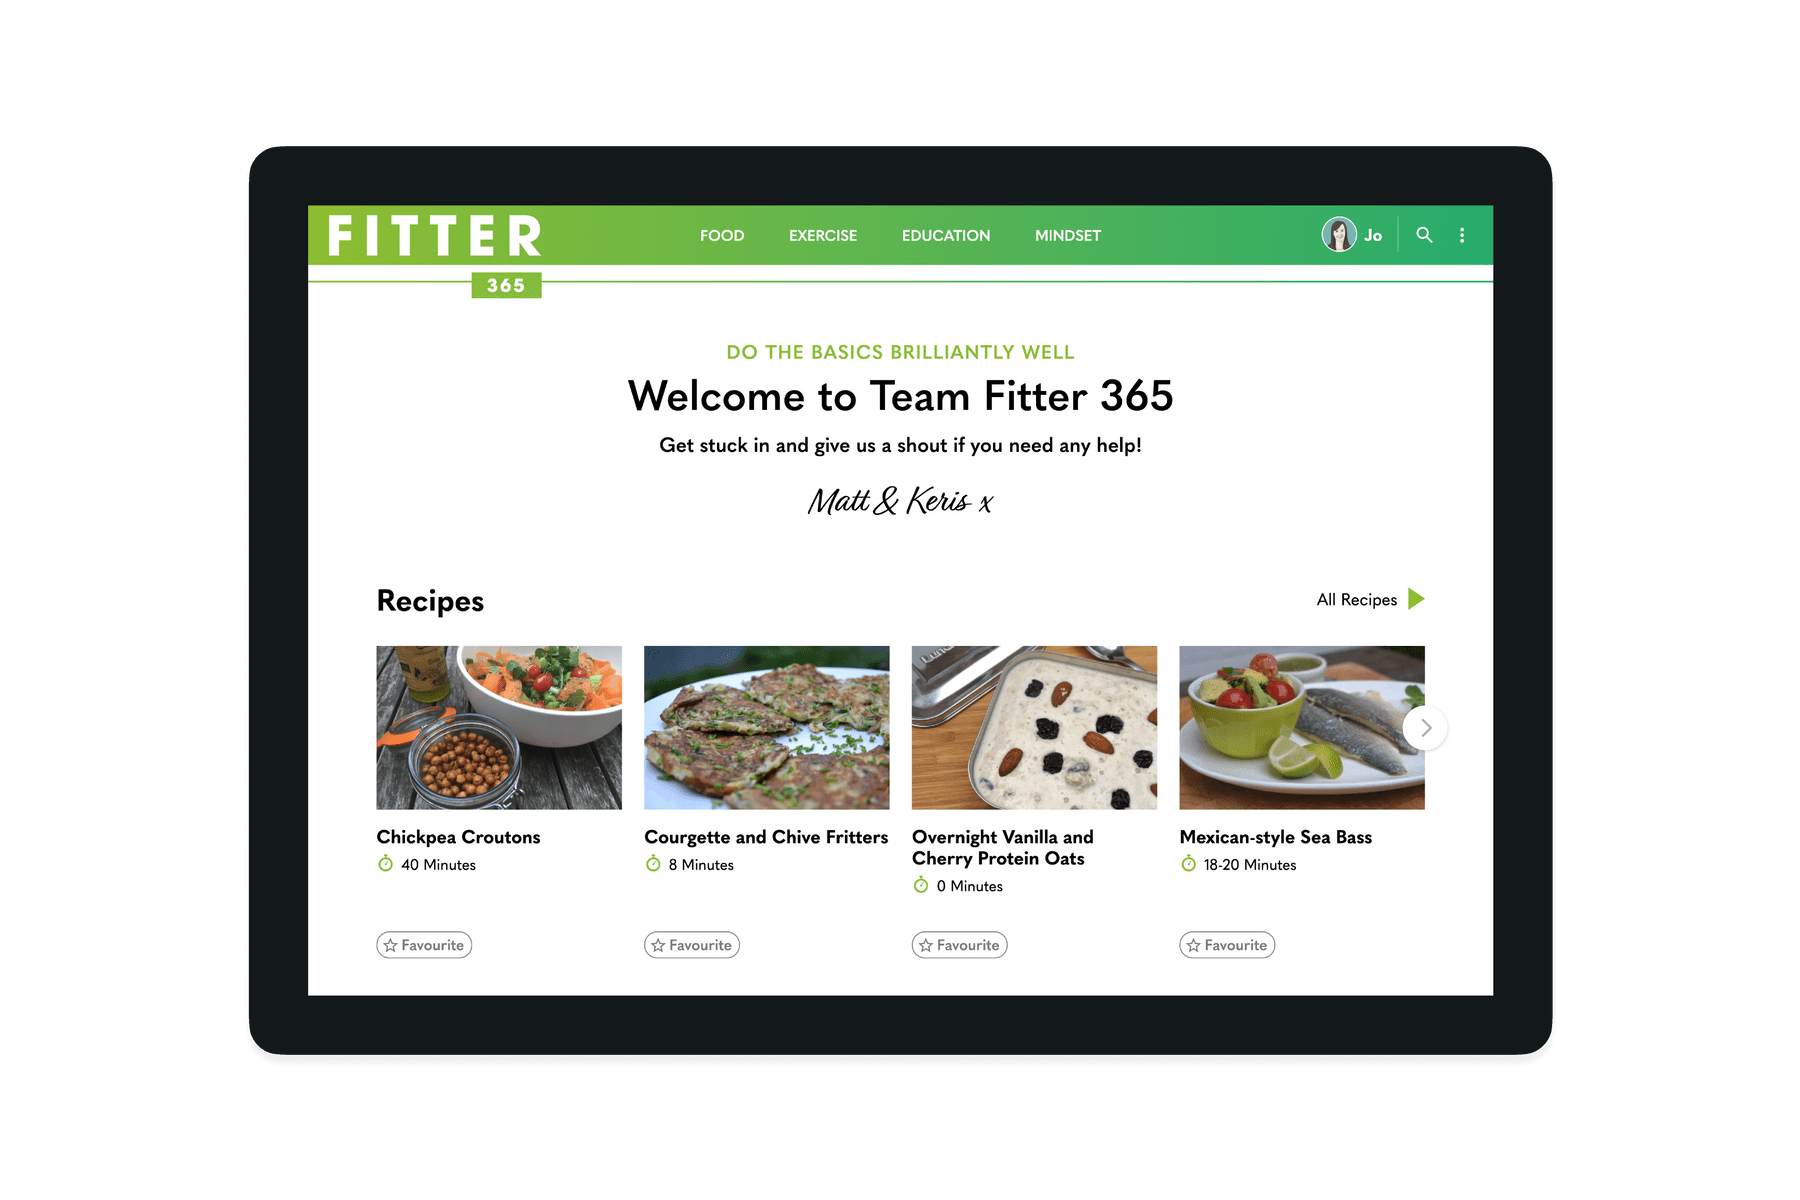 Tablet showing the members home page of the Fitter 365 website